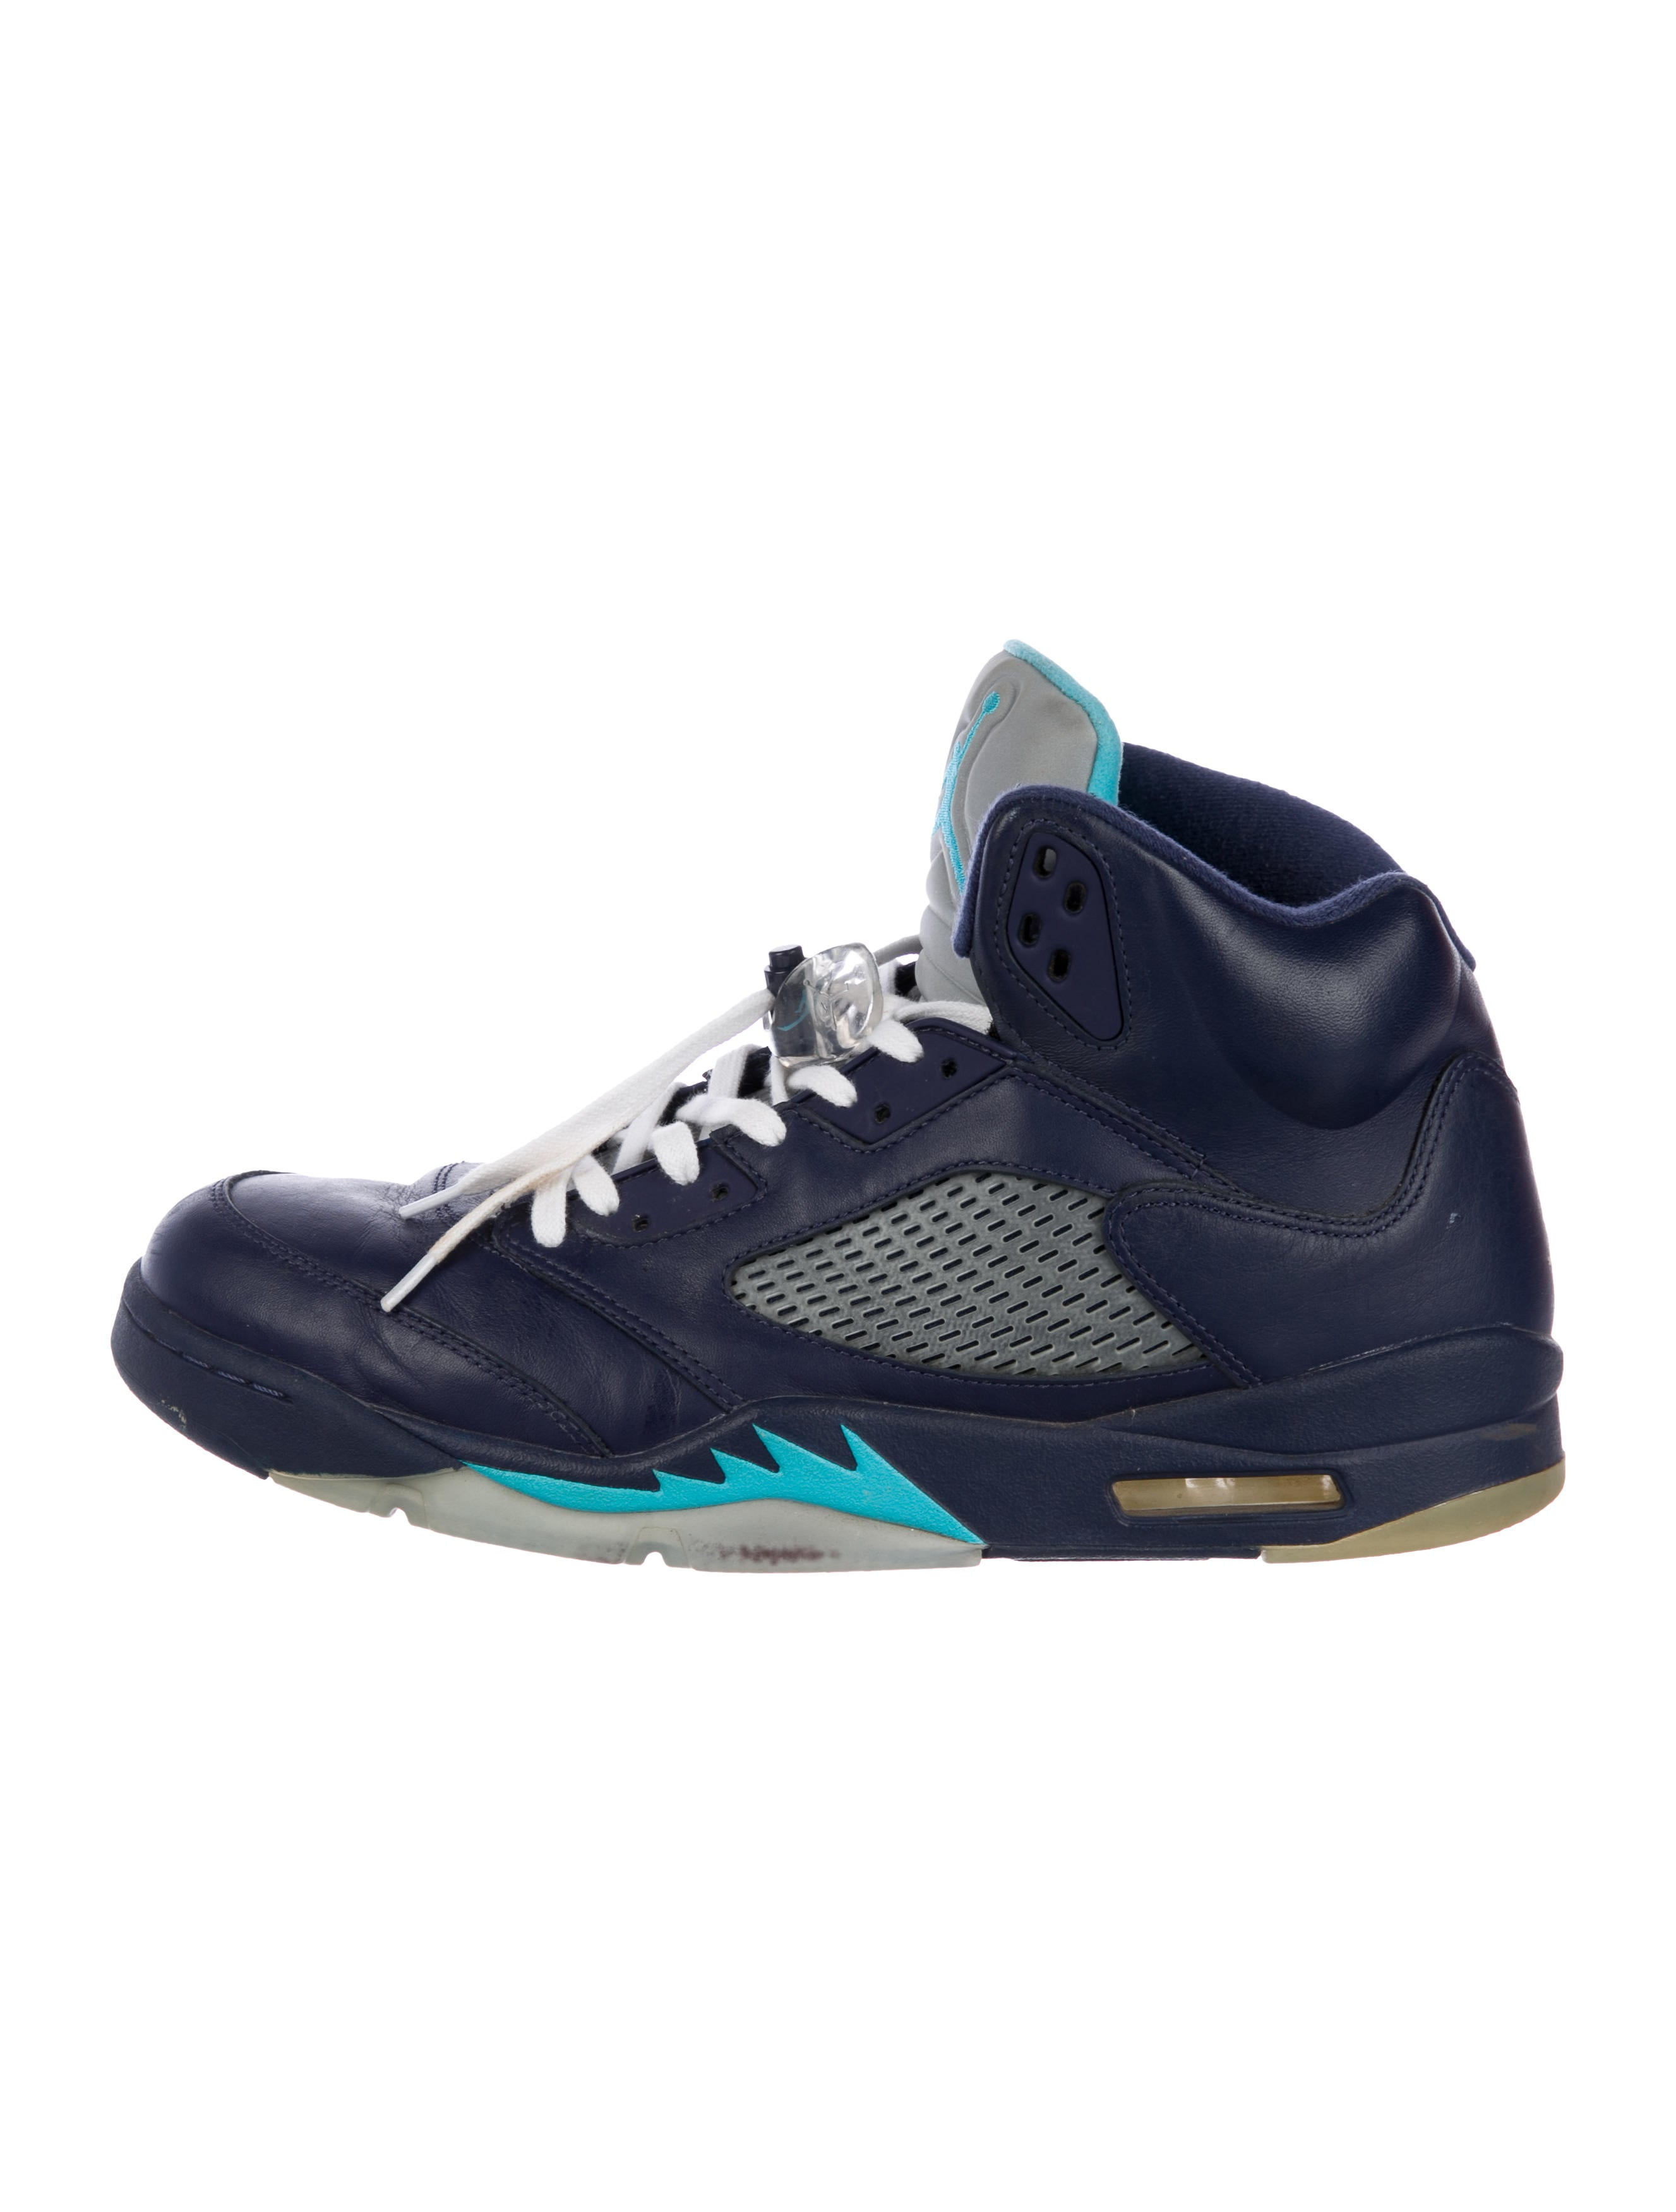 check out 420df 93181 5 Retro Hornets Sneakers